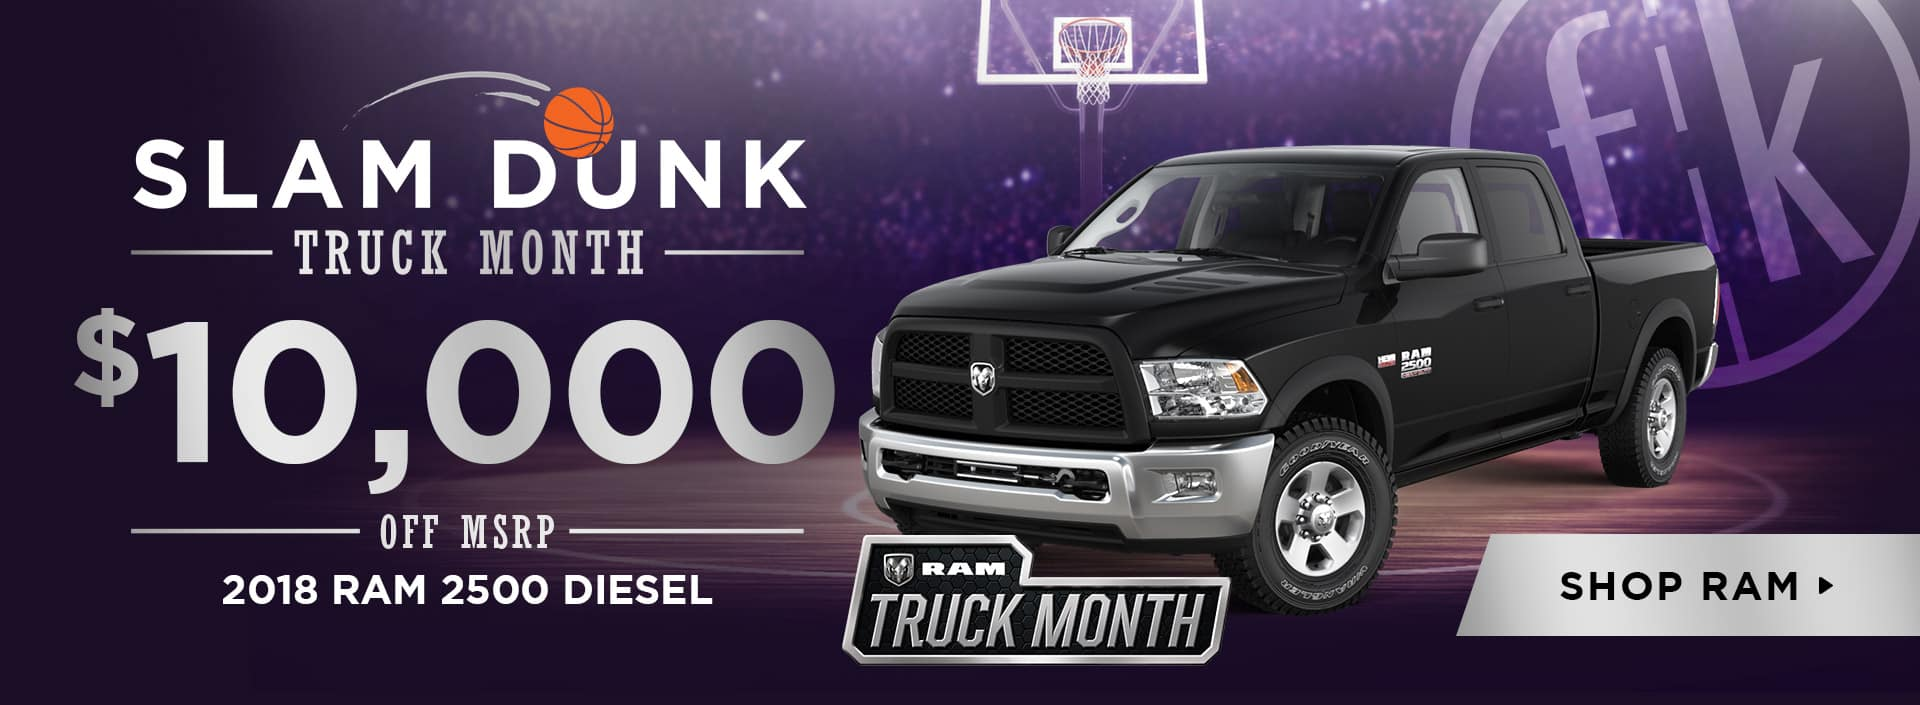 March 2018 RAM 2500 Diesel $10,000 Off